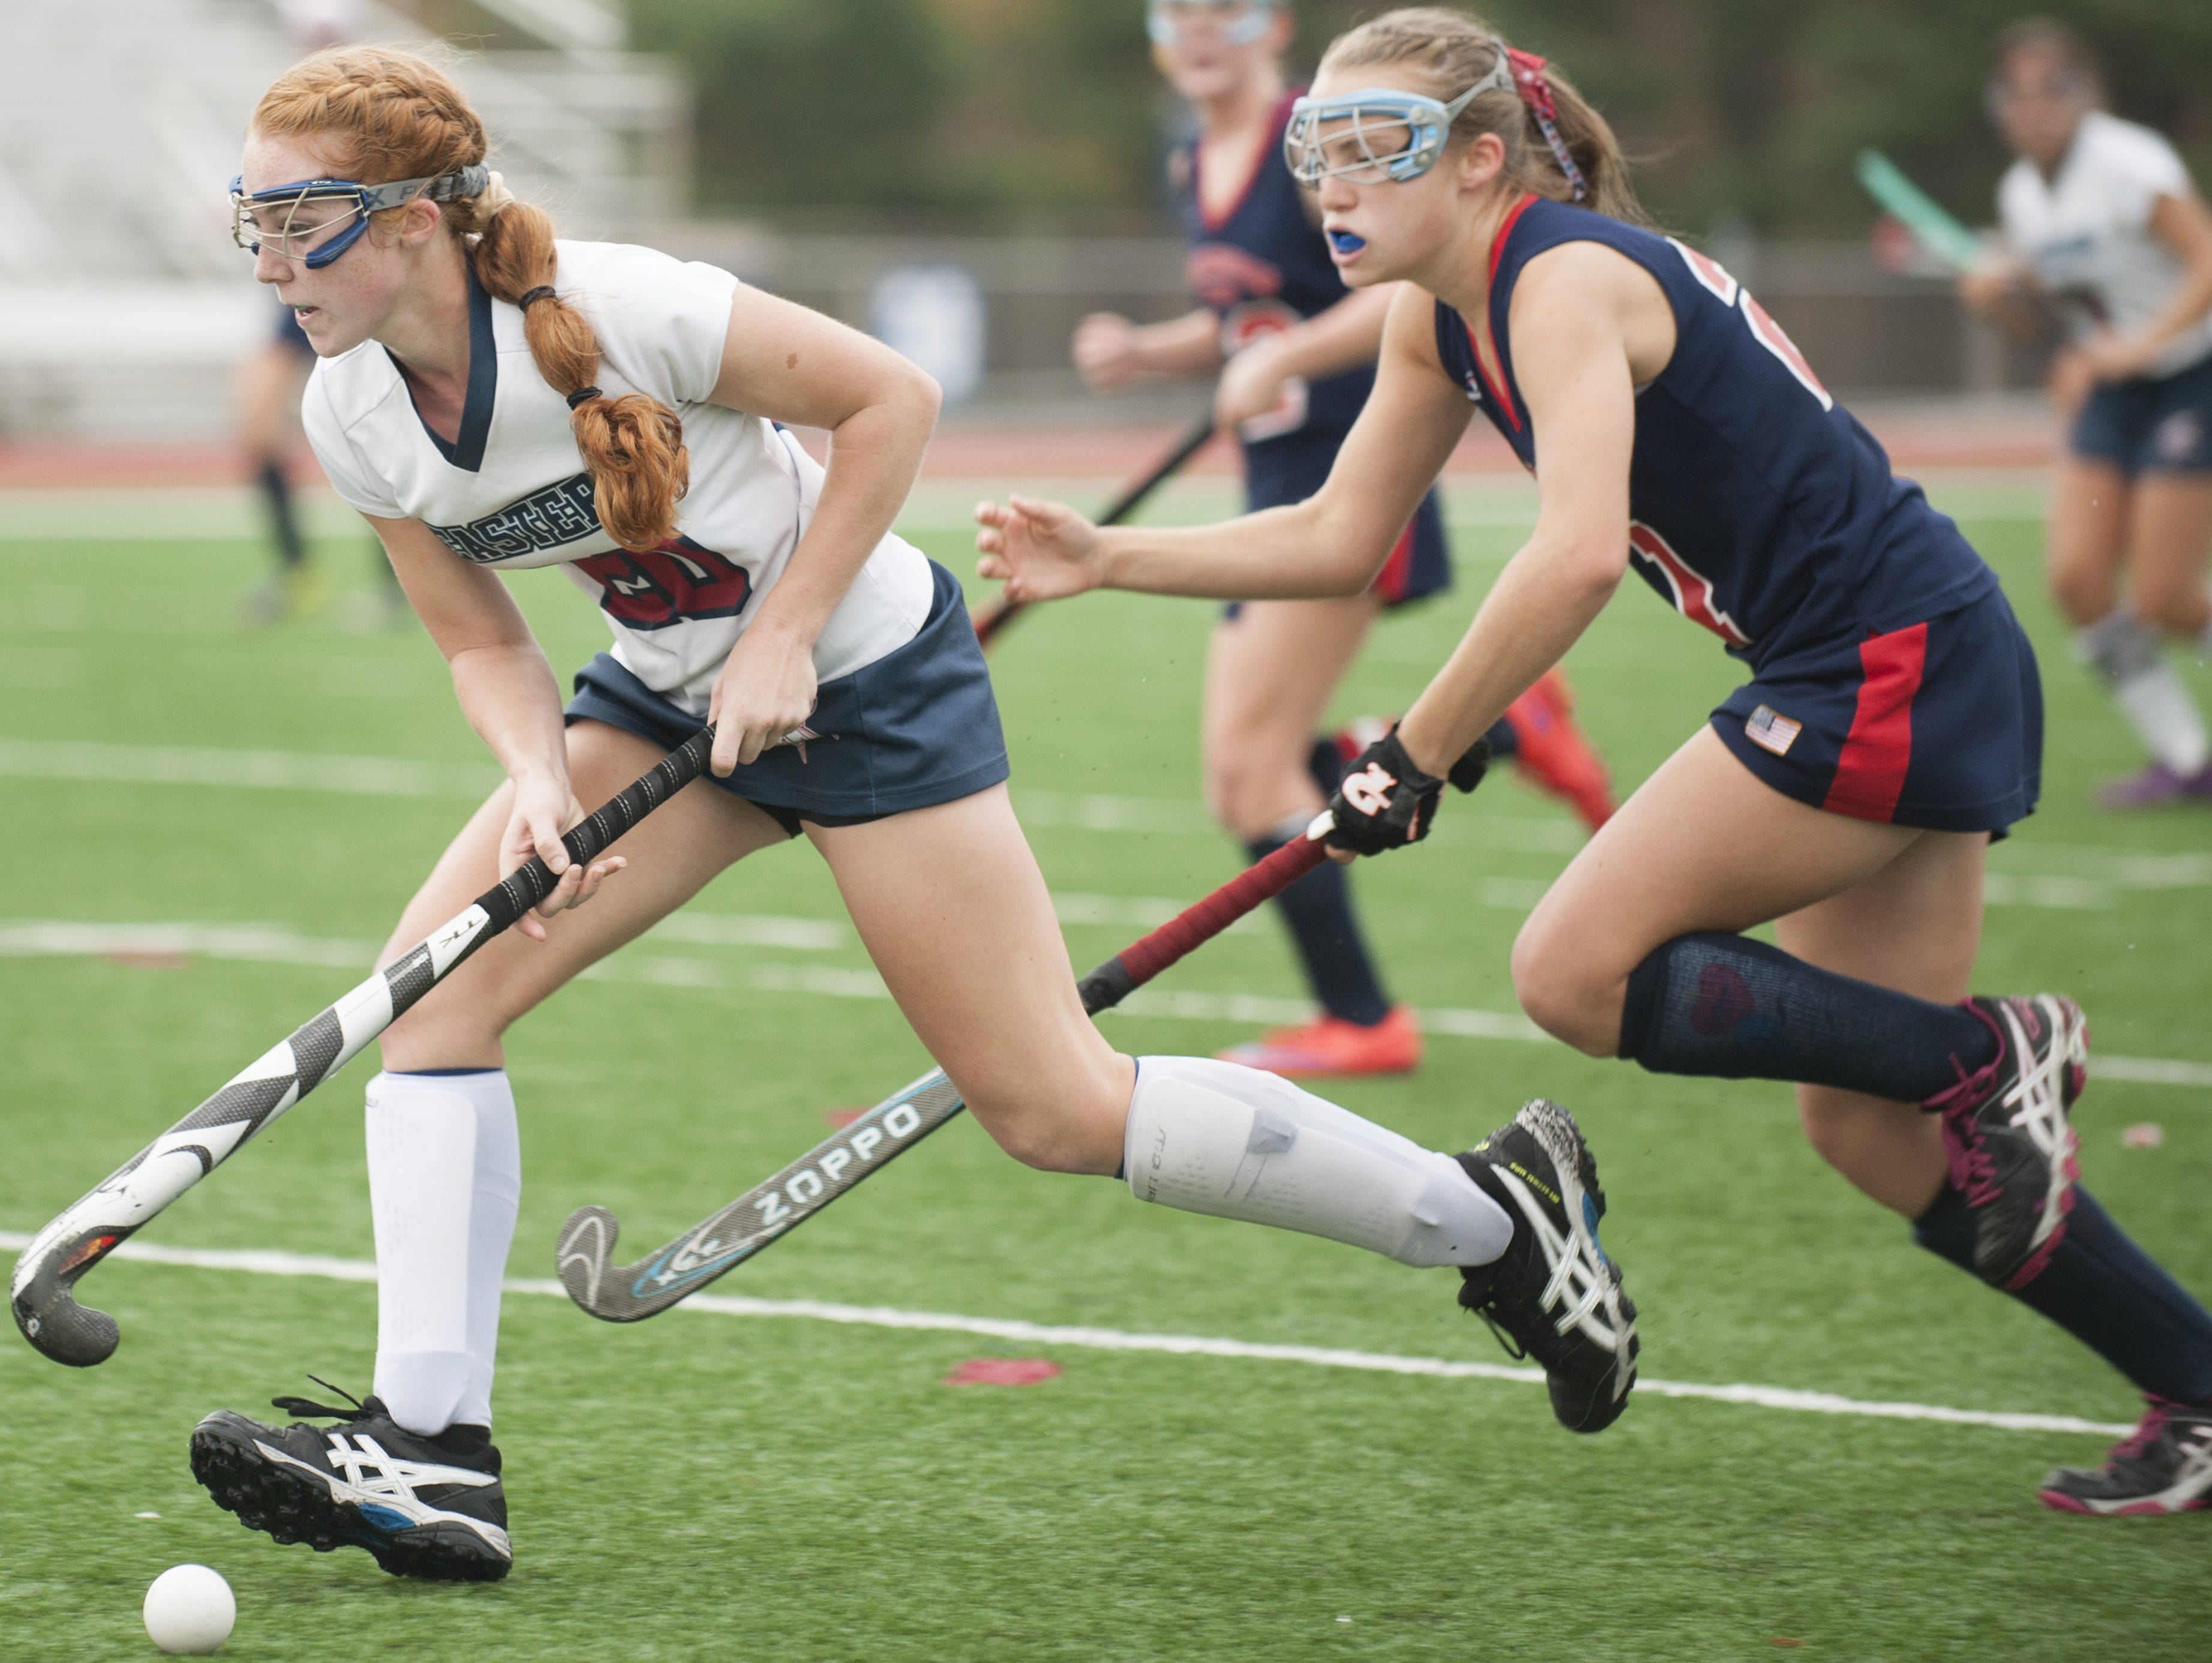 Eastern's Nicole Santore, left, controls the ball in front of Washington Township's Jess Hatch during Thursday's South Jersey Group 4 final.